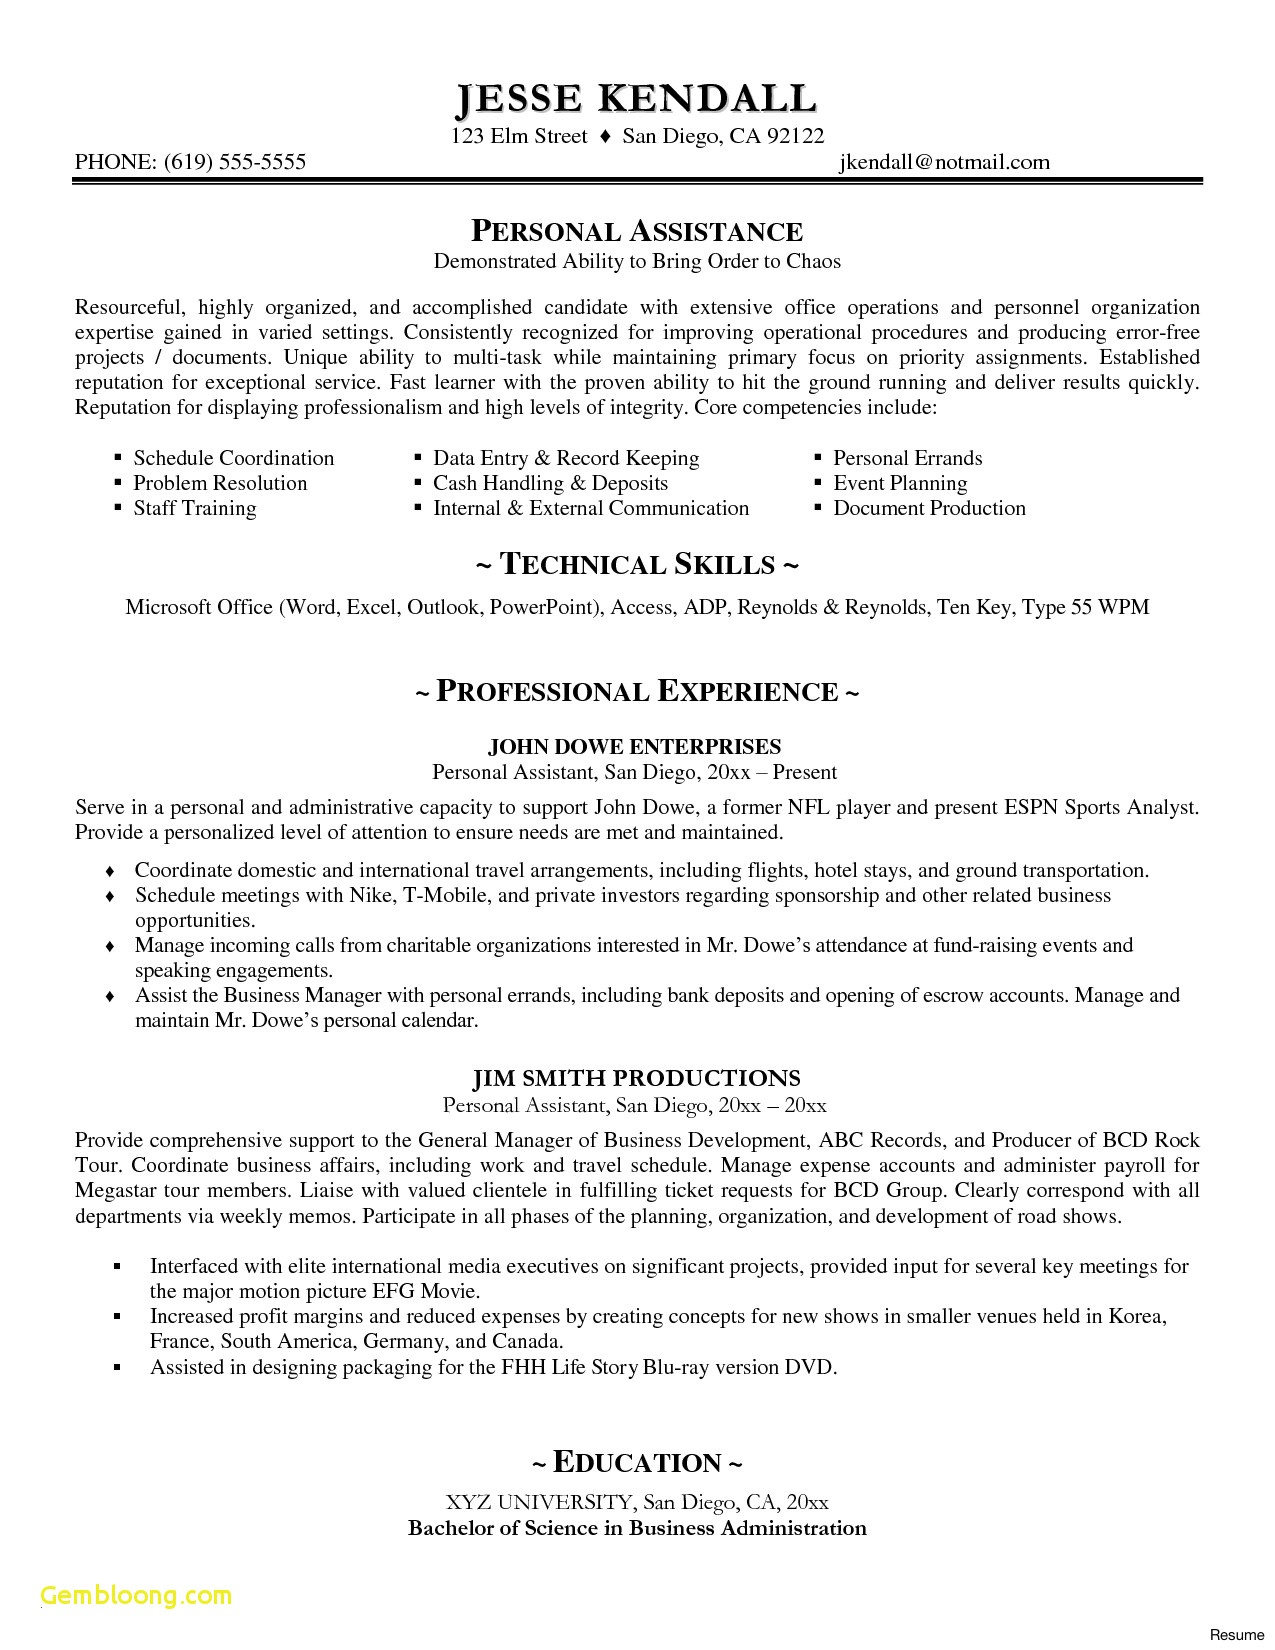 Free Cover Letter Template Word Download - Word Resume Template Downloads Legalsocialmobilitypartnership